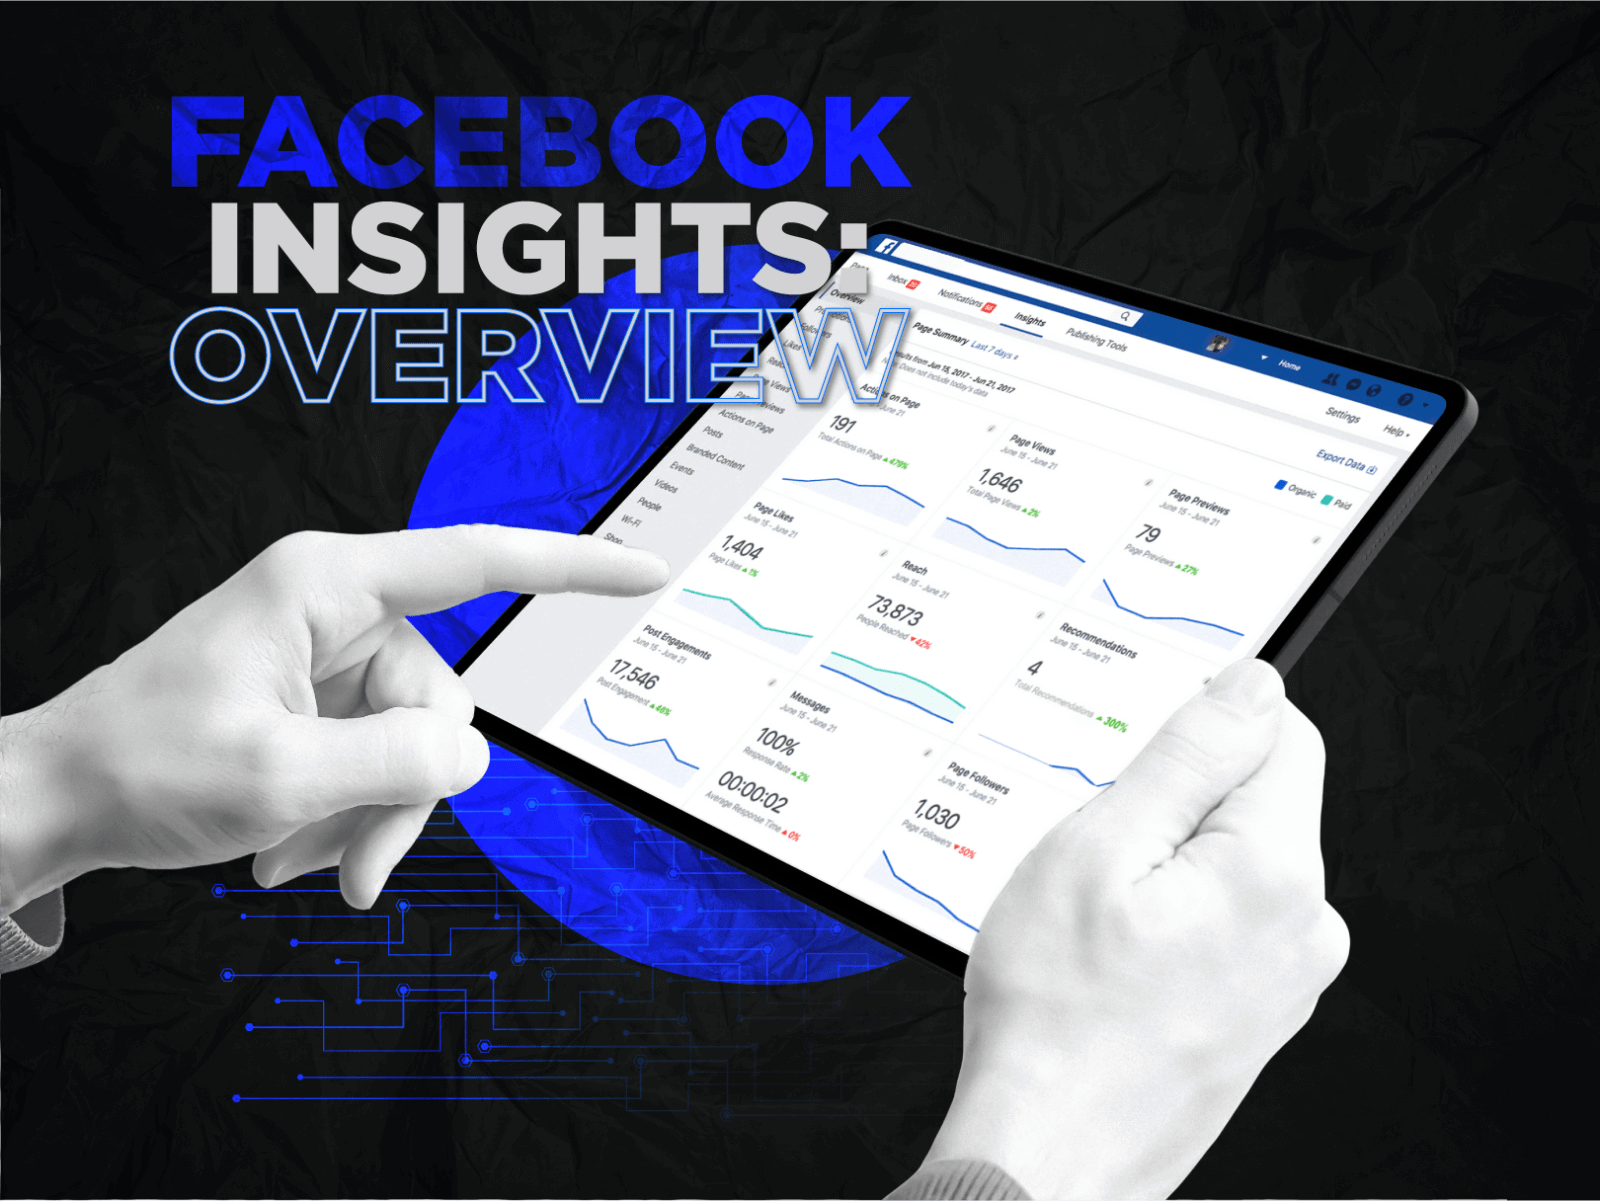 Facebook Insights: Overview